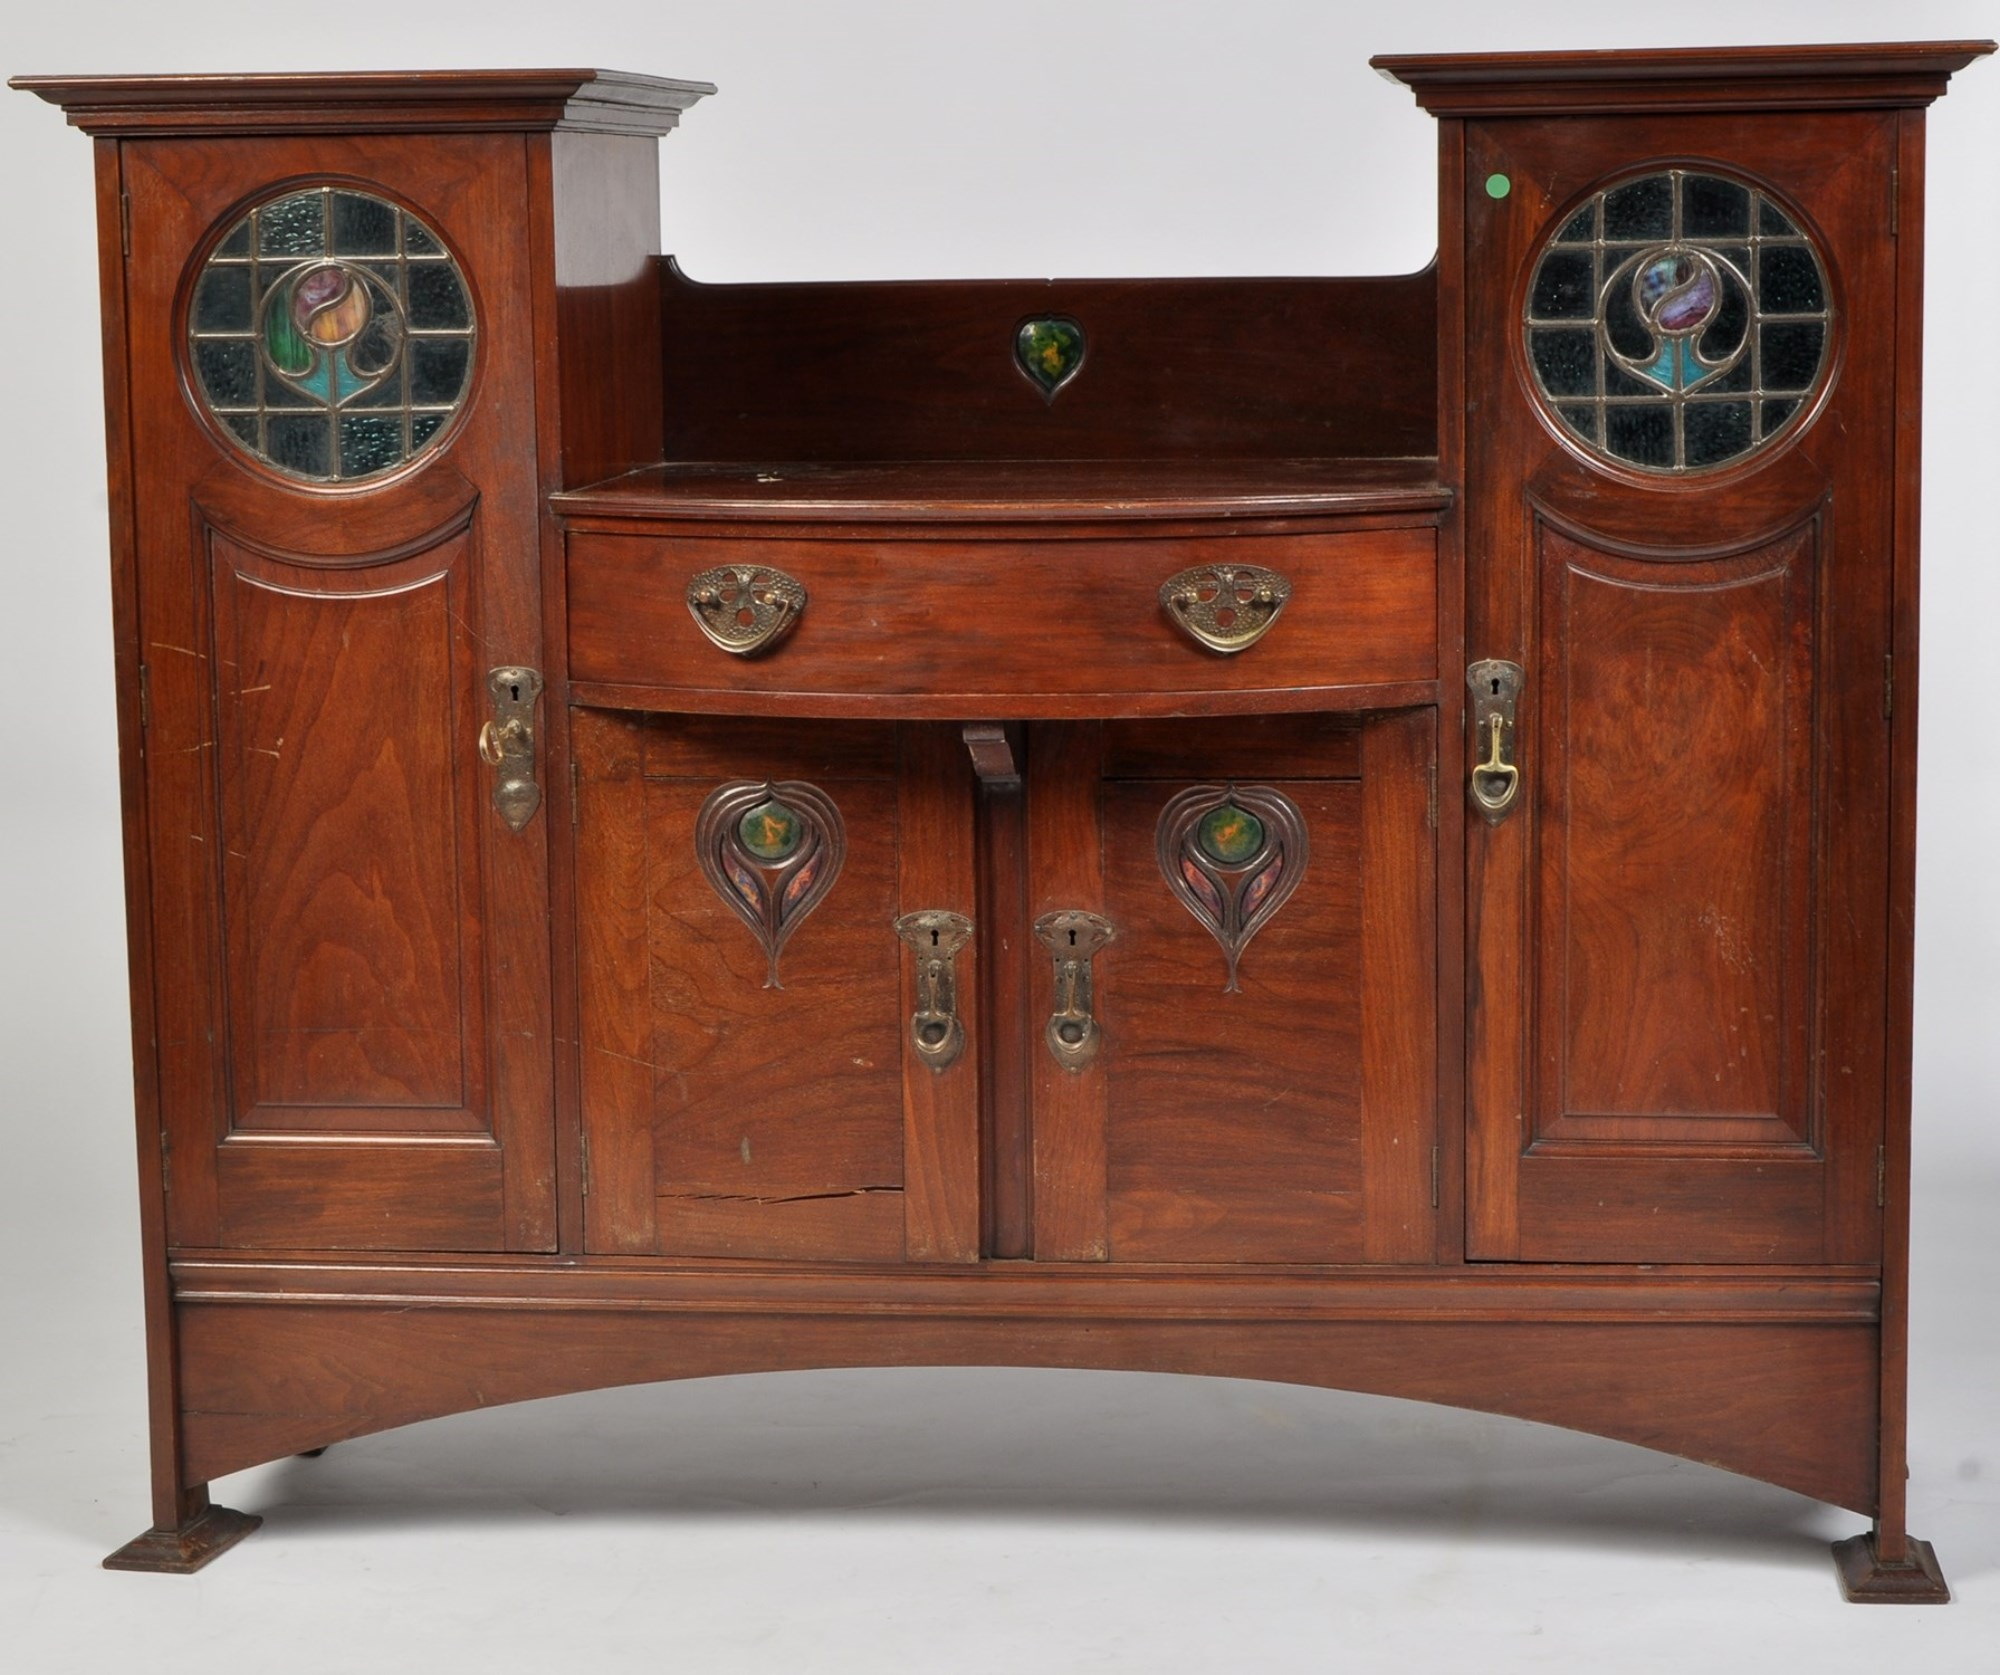 Shapland & Petter, Barnstaple: a late Victorian Arts & Crafts walnut sideboard,